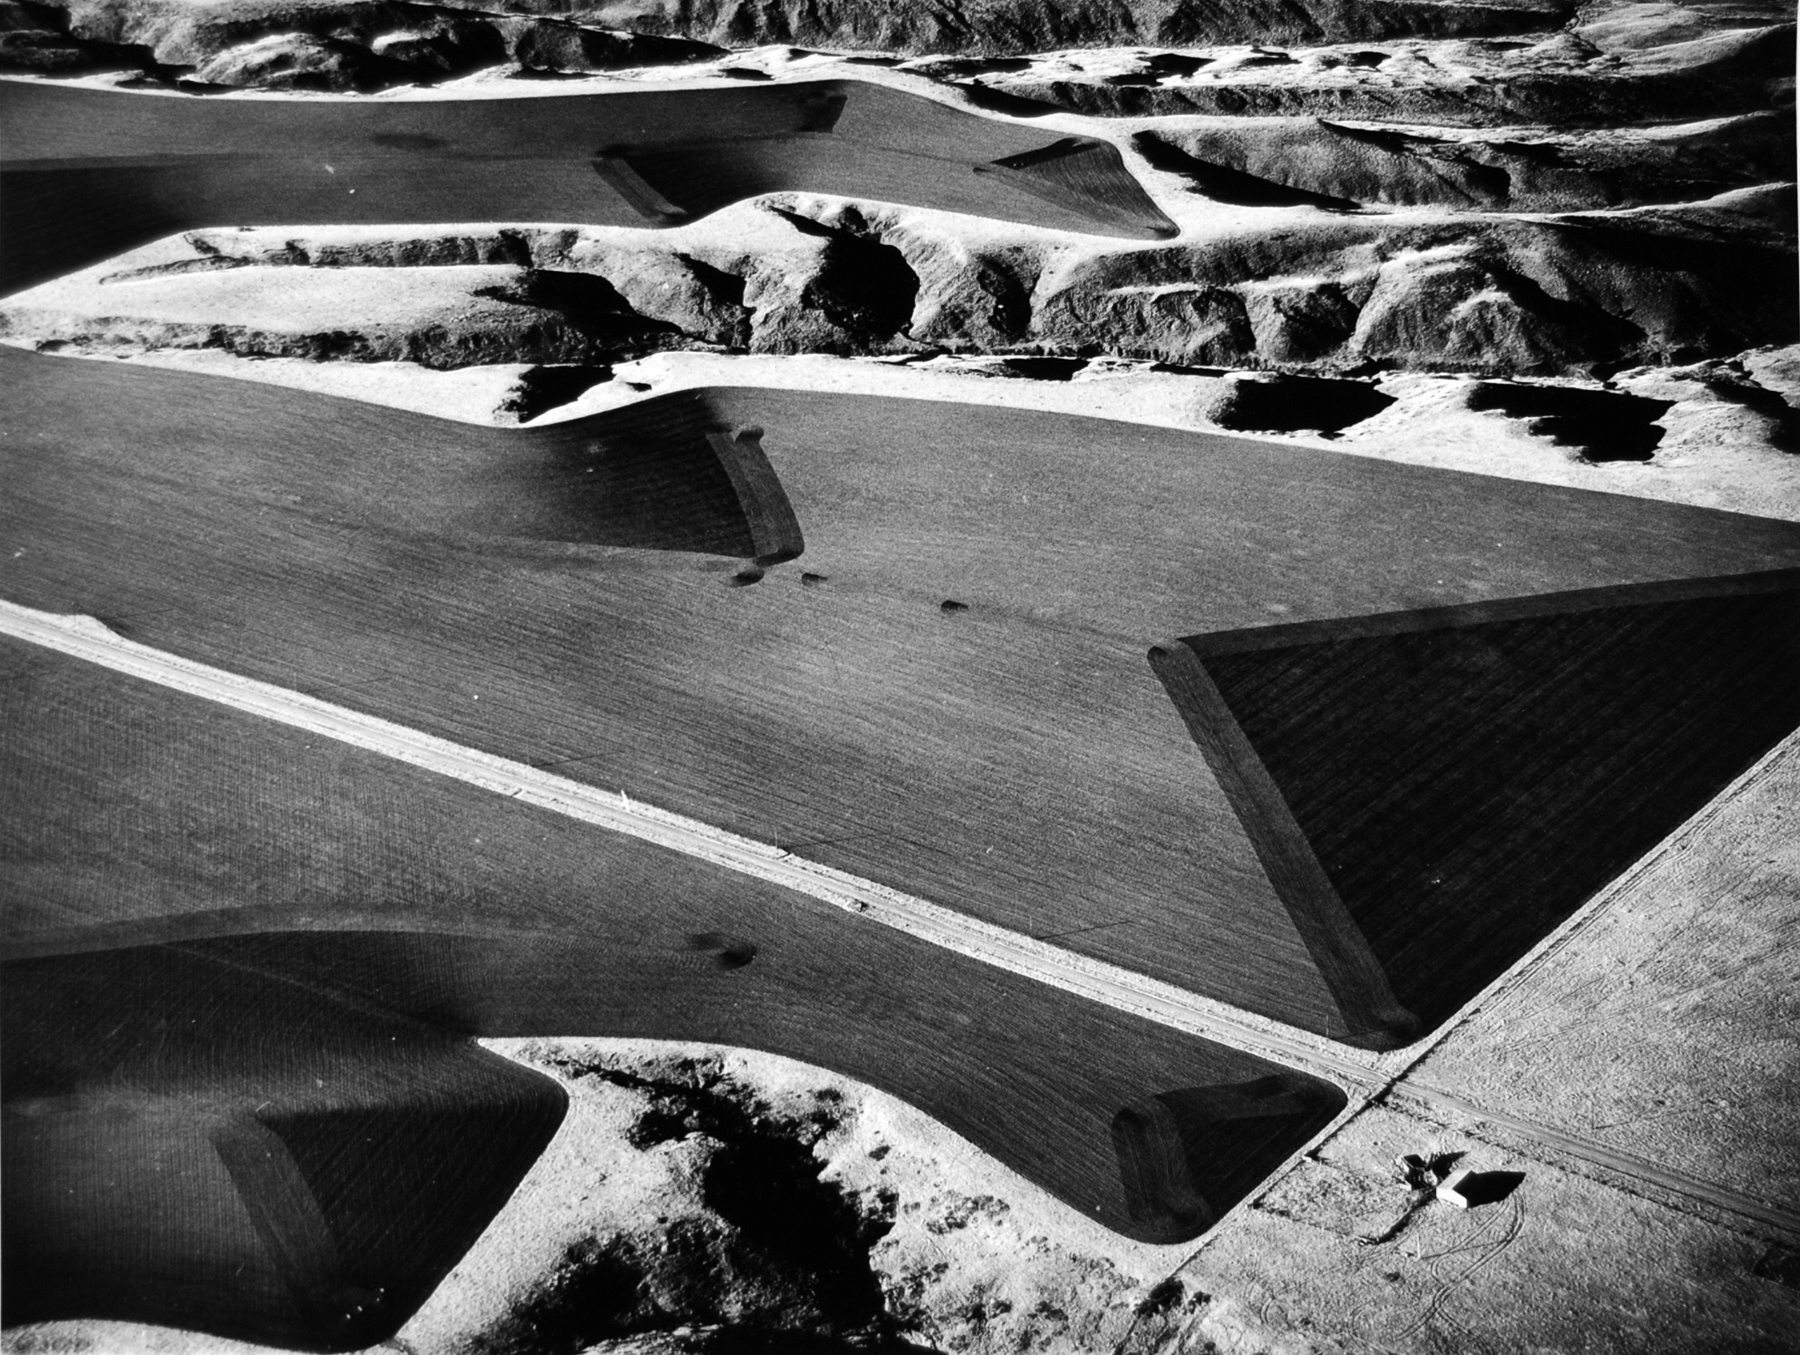 """Marilyn Bridges (American, b. 1948), Farmer's Edge, South Dakota, 1984; 2011:314  In 1976, upon seeing the Nazca Indian """"runway"""" lines in Peru, Marilyn Bridges decided to become a pilot. Bridges is credentialed to fly single- and multi-engine land and sea aircraft, and she even owns her own Cessna, but she does not pilot when she photographs. Waiting for just the right light, she directs the pilot where to fly and when to tilt in angles ranging from low oblique to vertical to get the right picture. The process is technically demanding both in terms of flying--the plane must slow down to just a notch above stalling even at a shutter speed of 1/1000th of a second--and in terms of photographing. Unable to slow the plane any more than she does, Bridges extends the speed of her Tri-X film by pushing it (a development technique). So that her landscapes resonate as land and not as abstractions, she shoots from an altitude no greater than 1000 feet above the earth, and she prefers to get as close as 200 feet. She usually shoots with a 6×7 Pentax medium-format camera, sometimes a Leica 35mm, and always from an open window."""